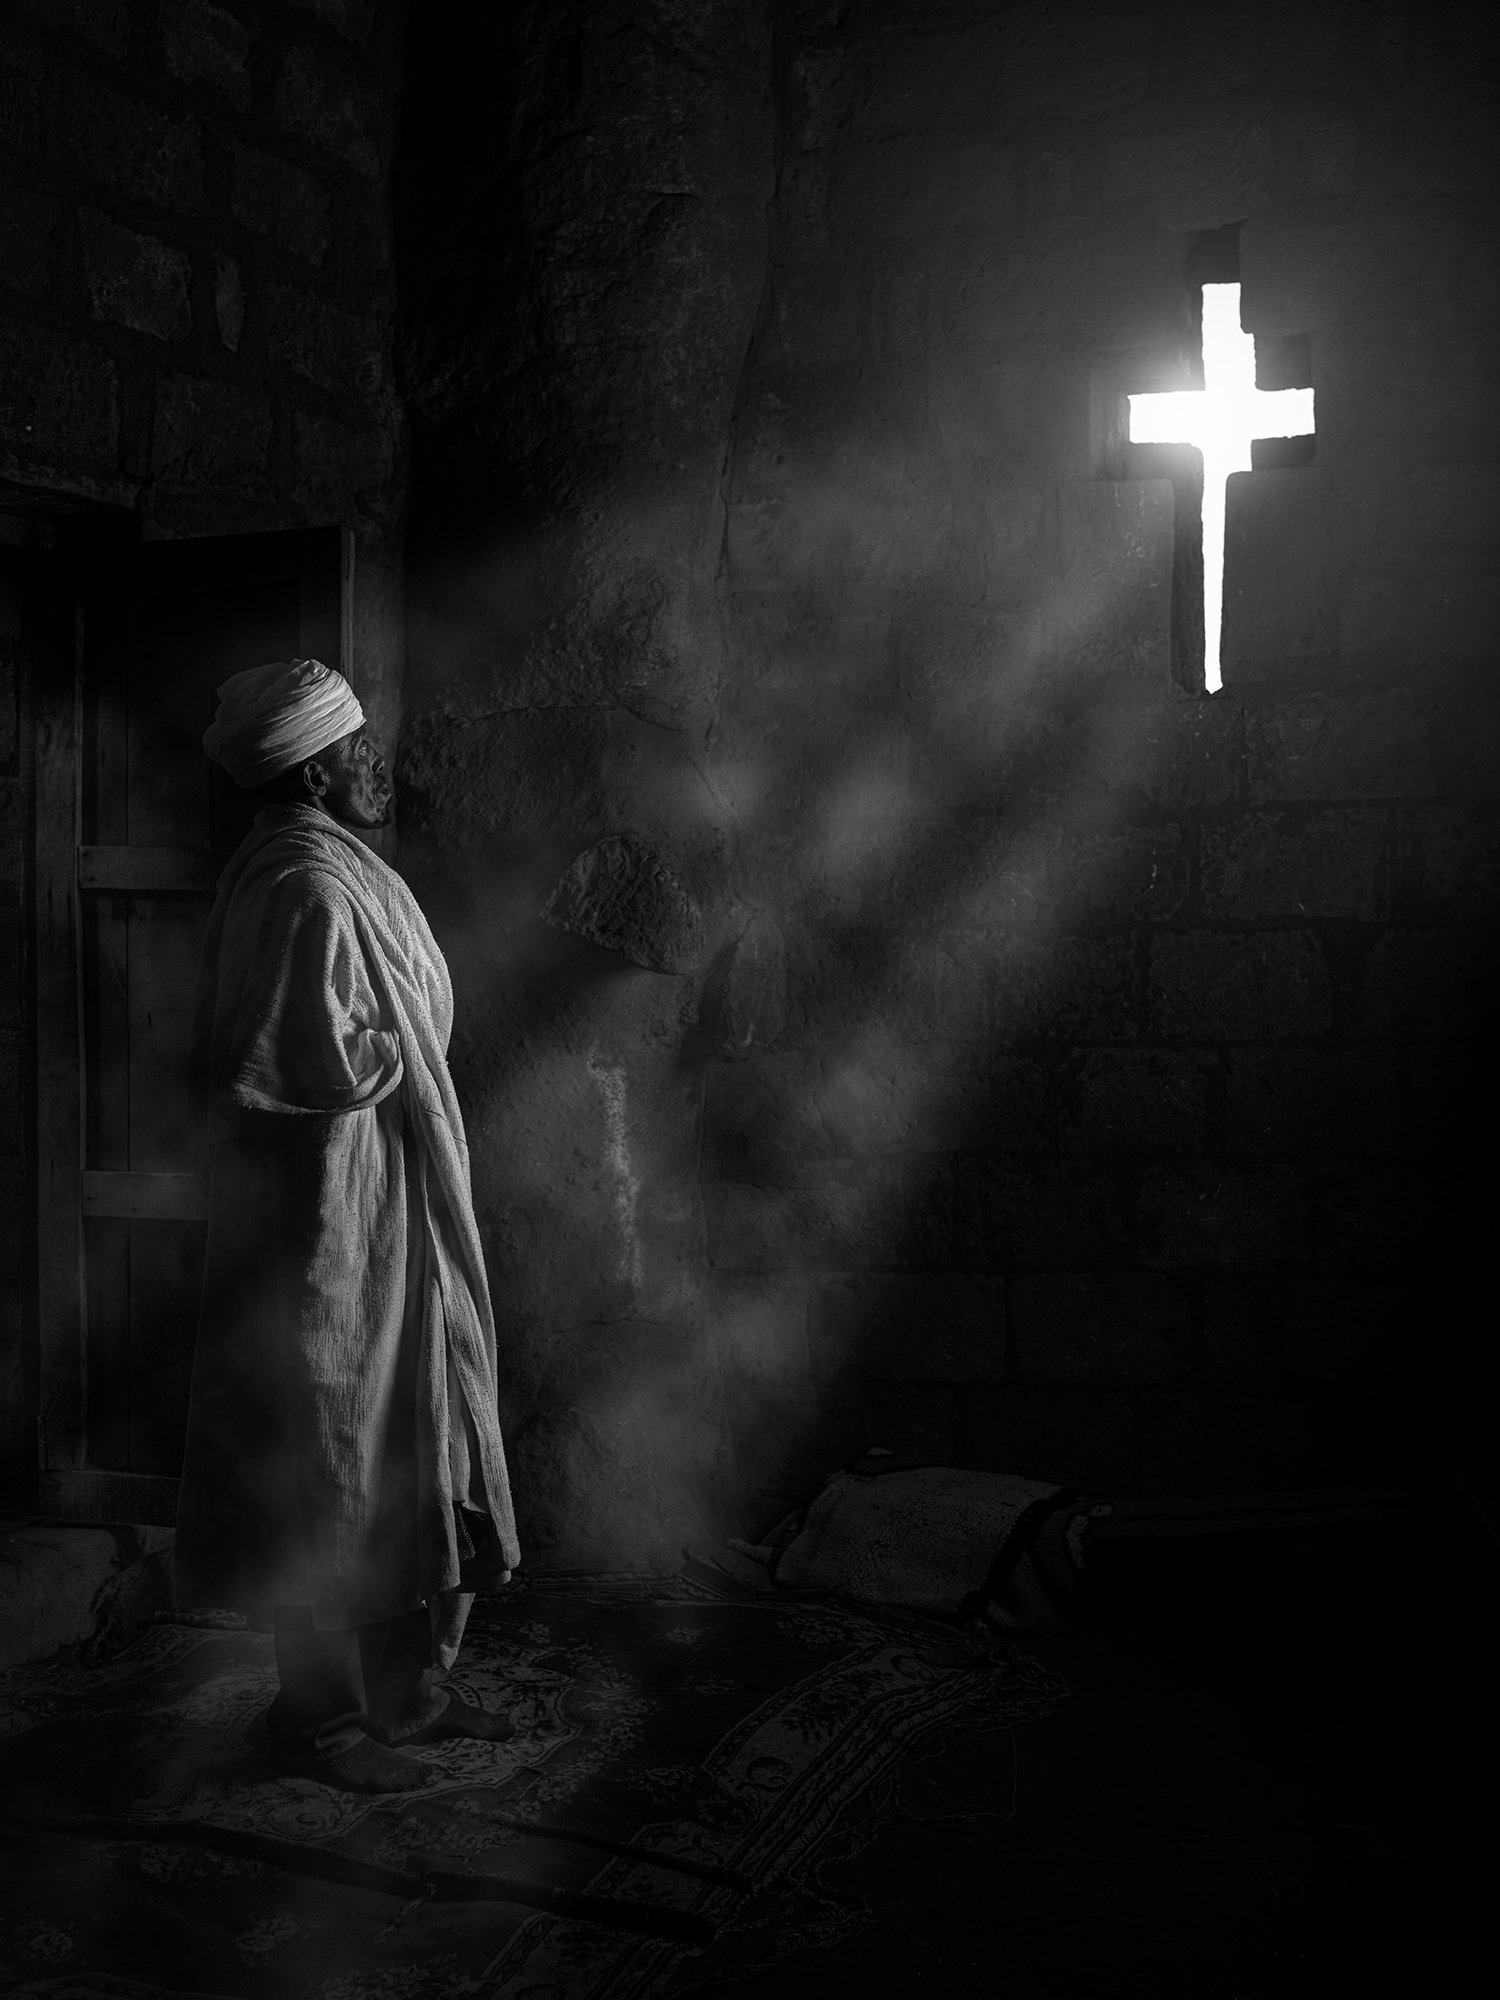 Black and white photograph, portrait, man, church, ethiopia